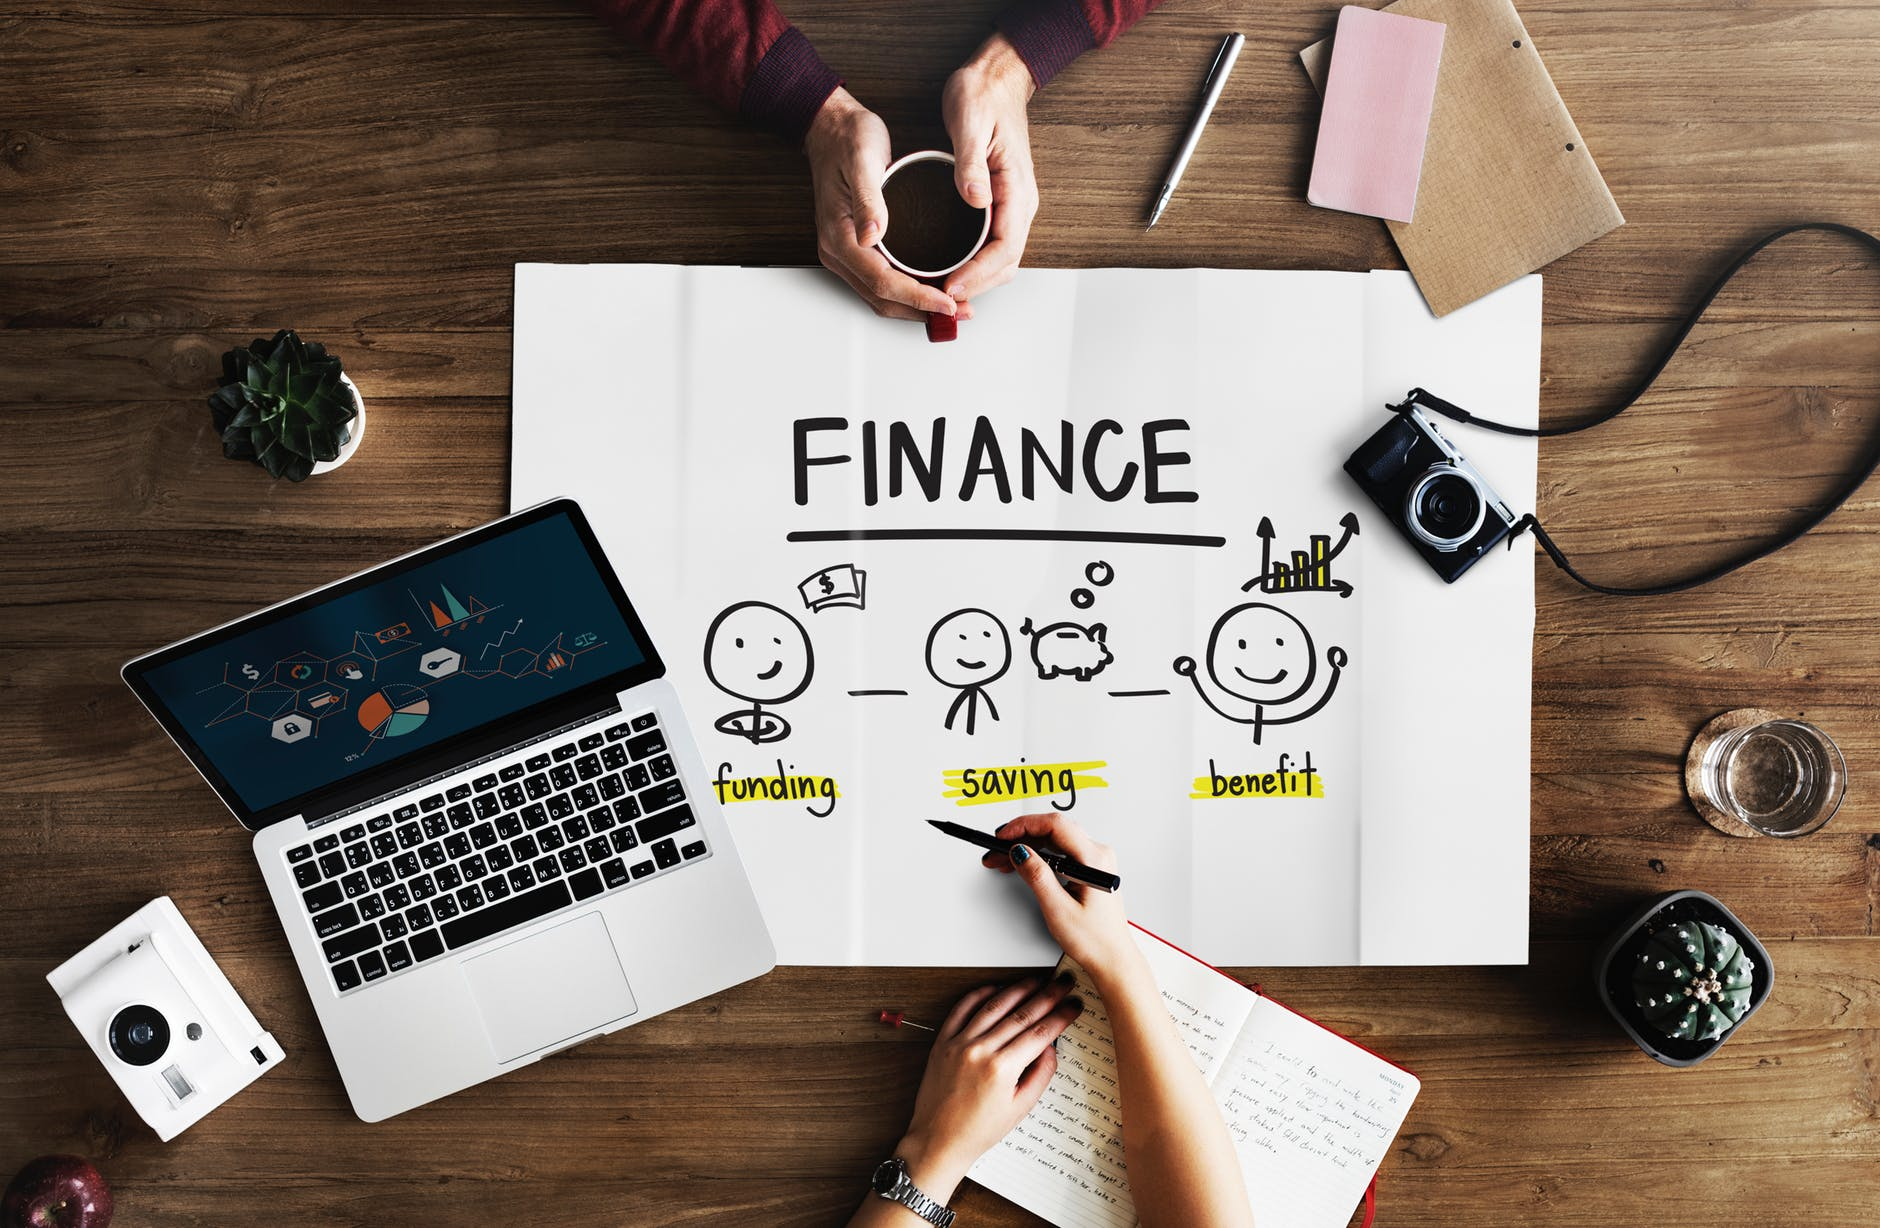 Most effective method to get financing For Your Small Business